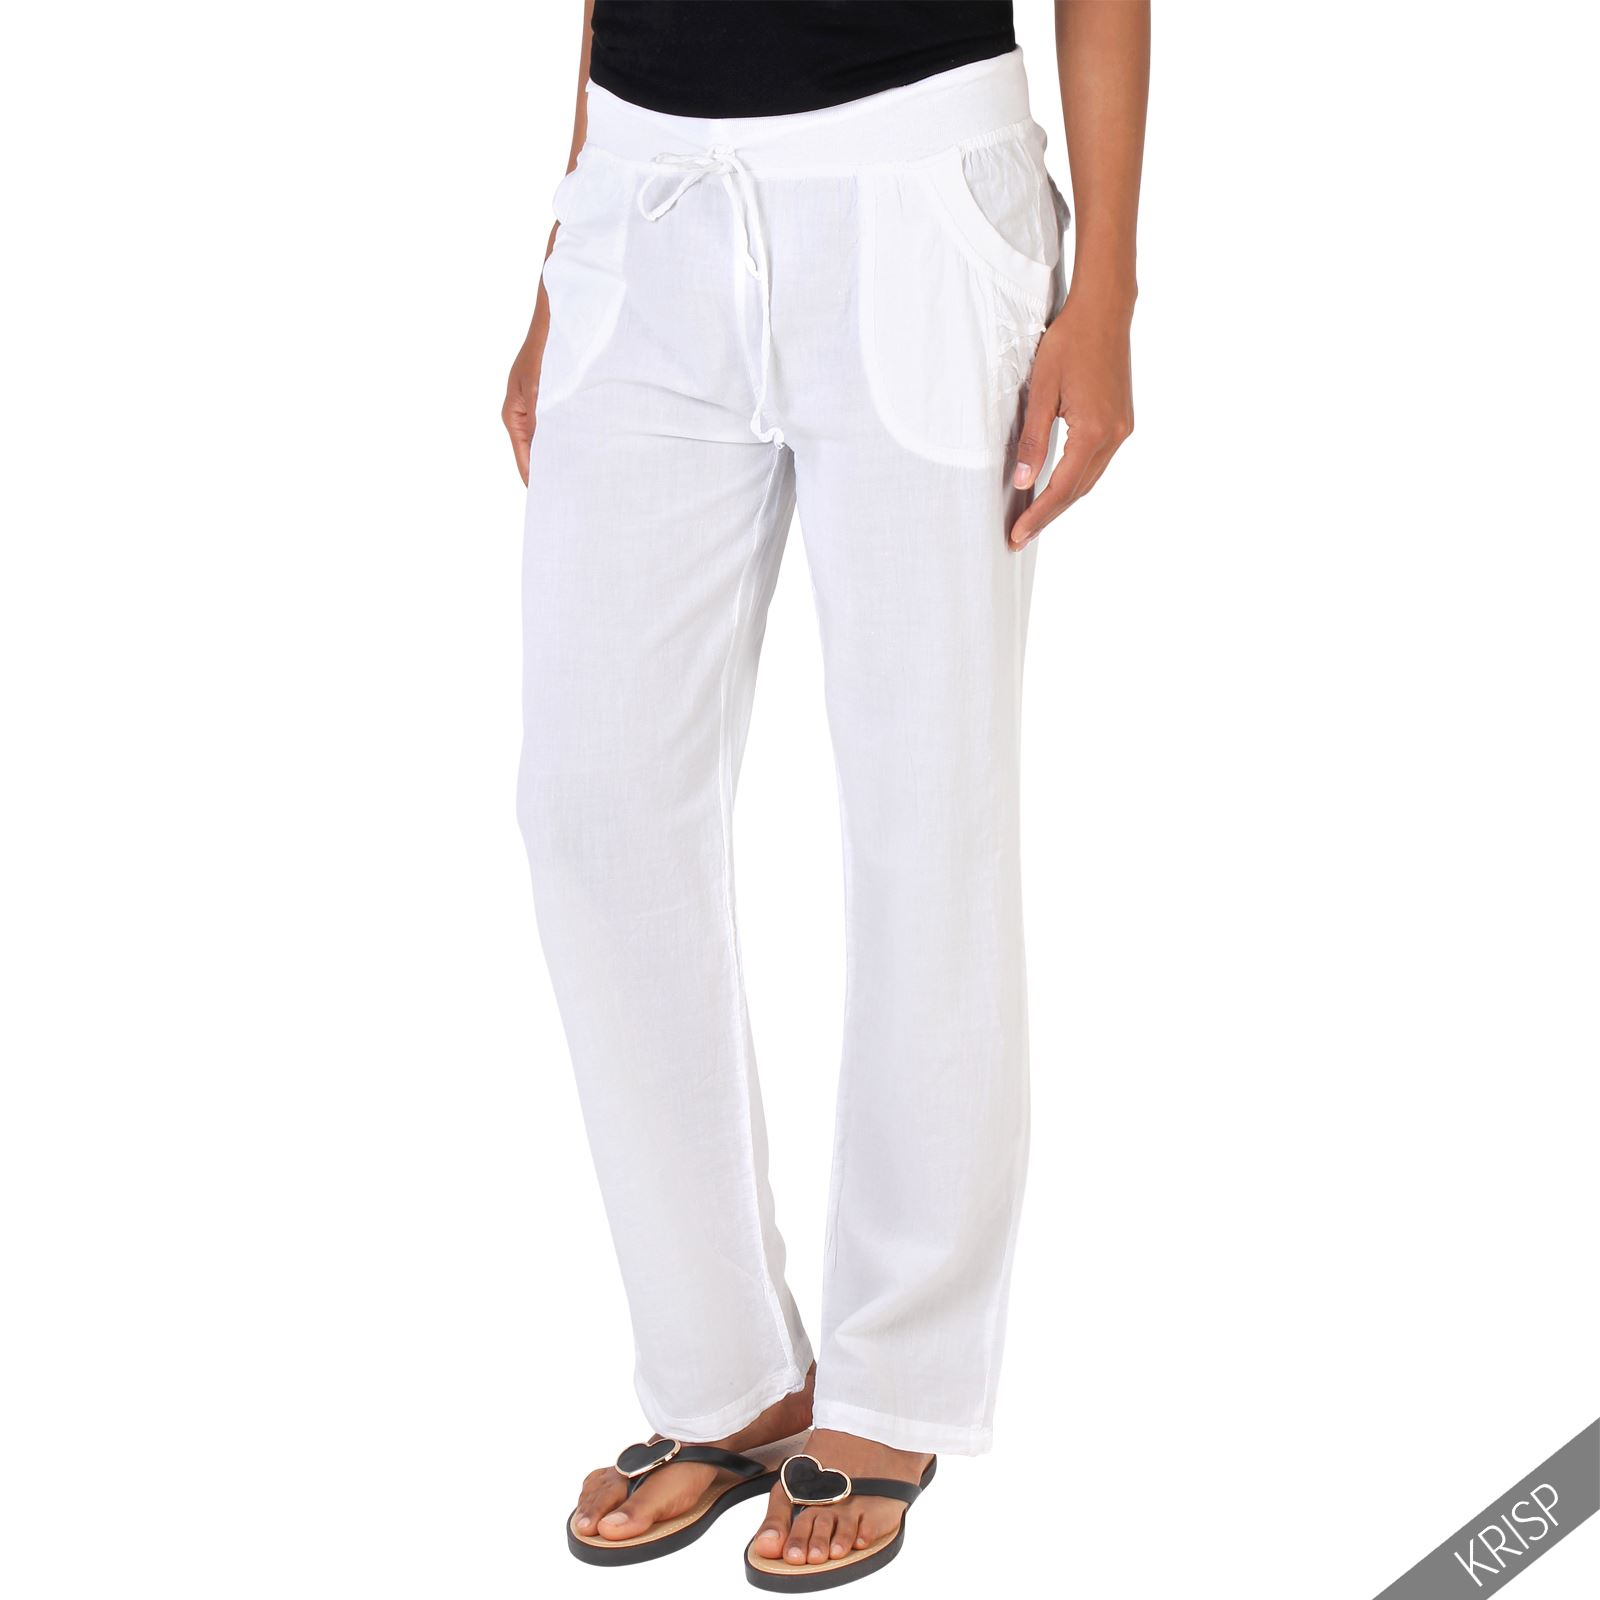 Excellent And Unlike Pockets In Most Womens Pants, Theyre Actually Spacious Theyre Not Just For Show! There Are Also Two Welt